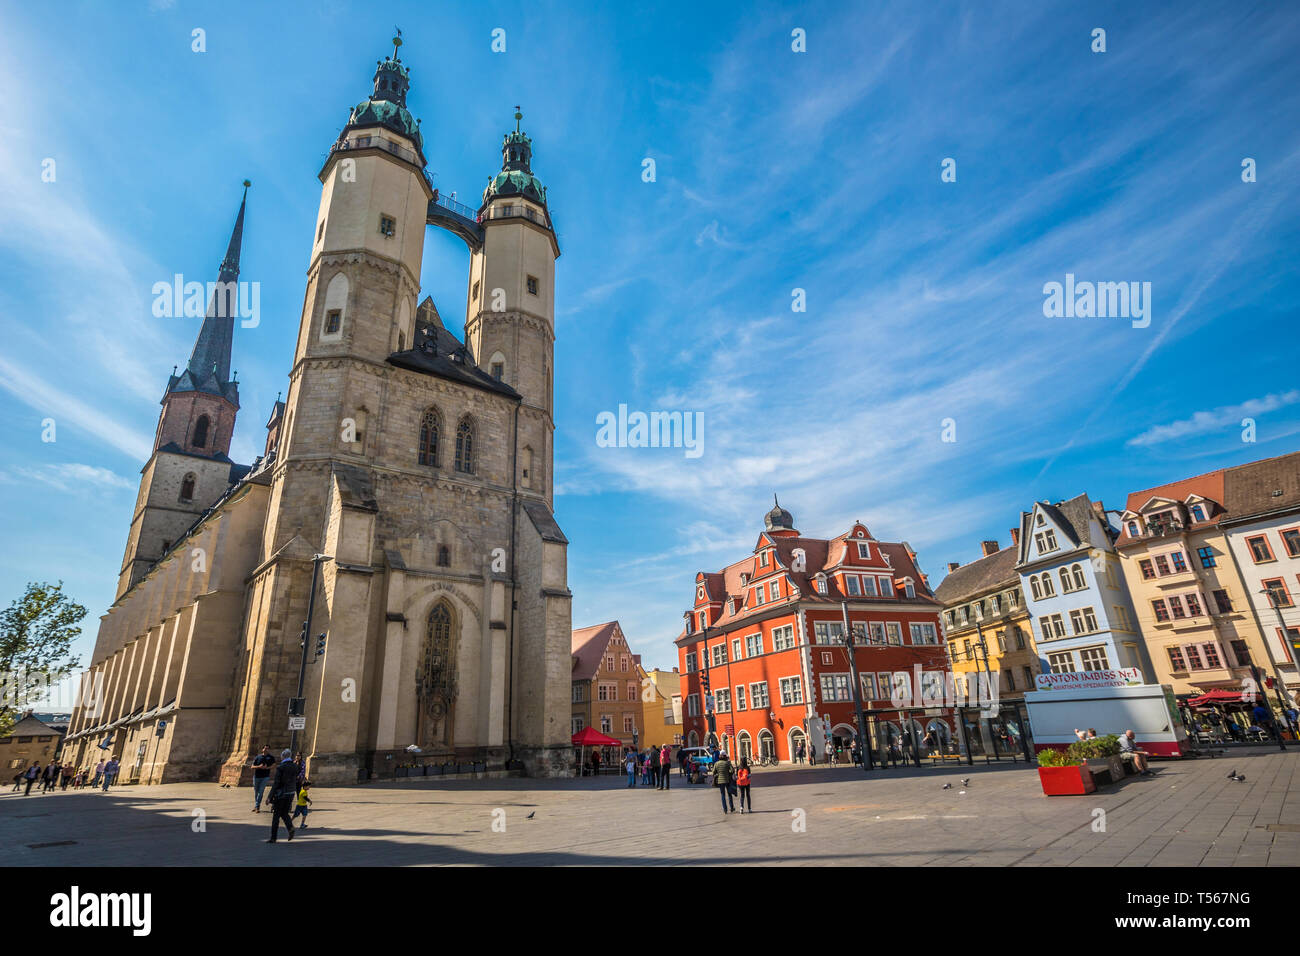 The church in Halle Saale Germany Stock Photo